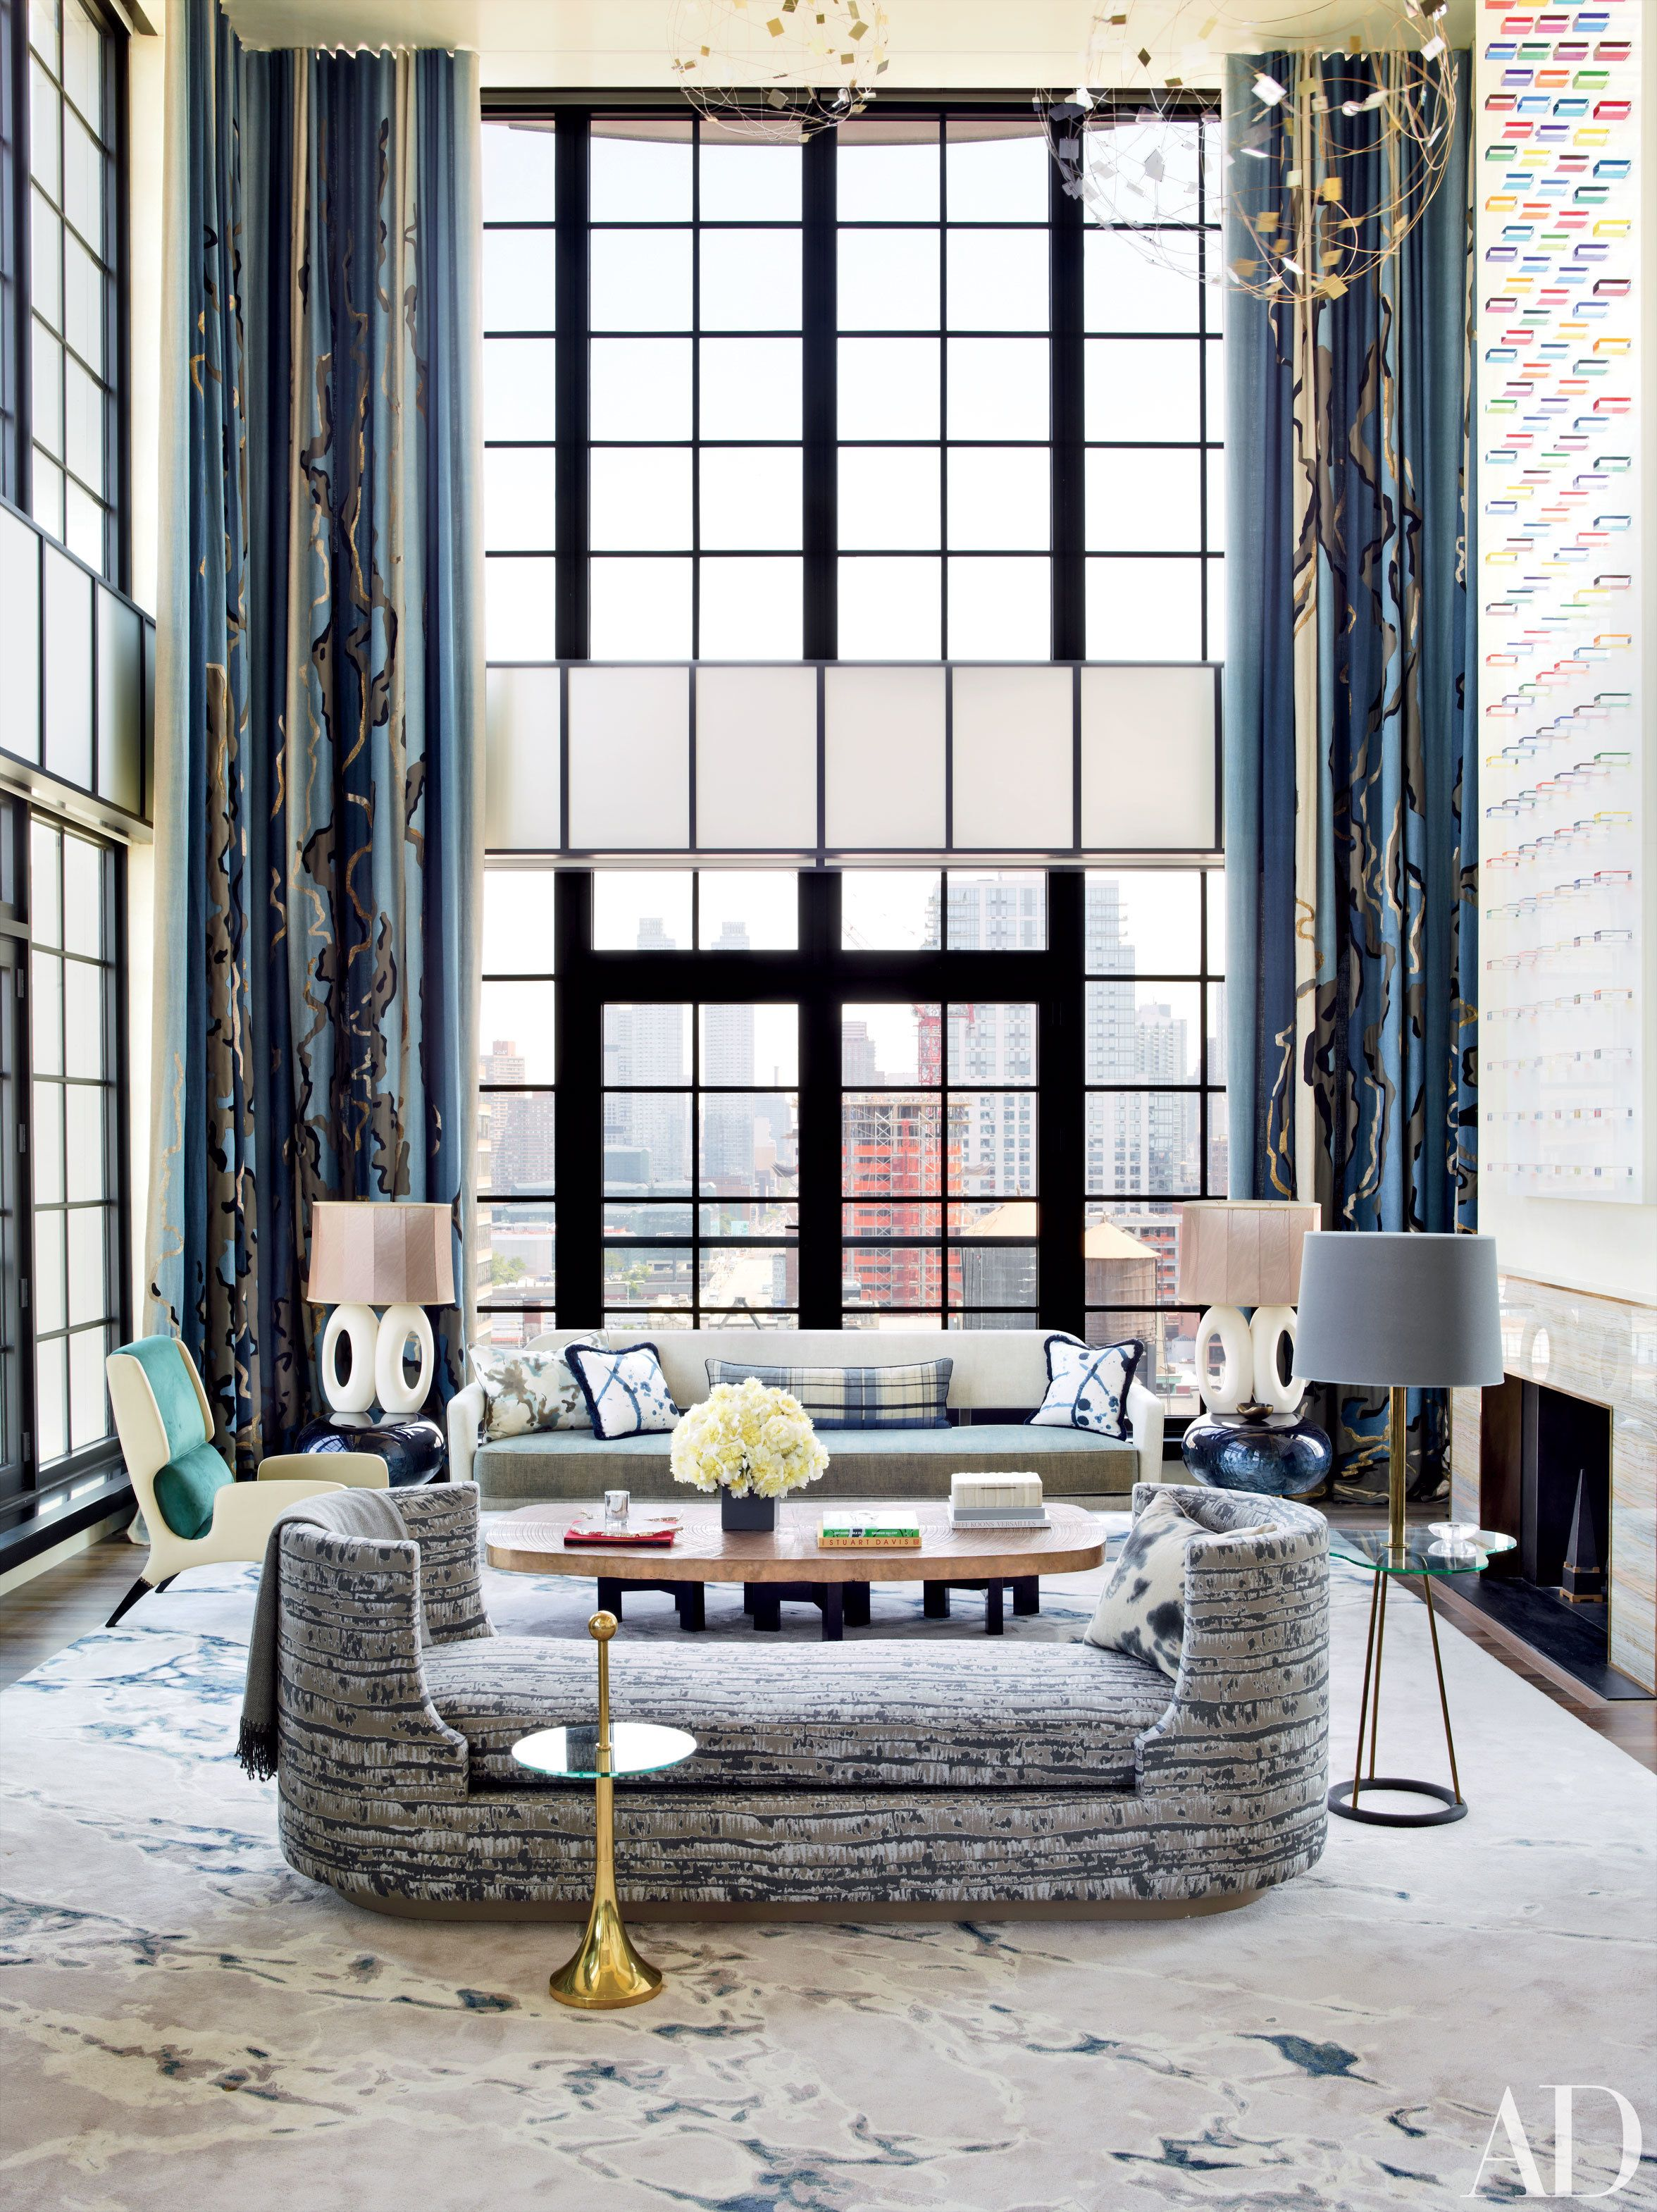 Interior designer jean louis deniot created a lyrical new york pied à terre for a family based in paris and aspen colorado span architecture collaborated